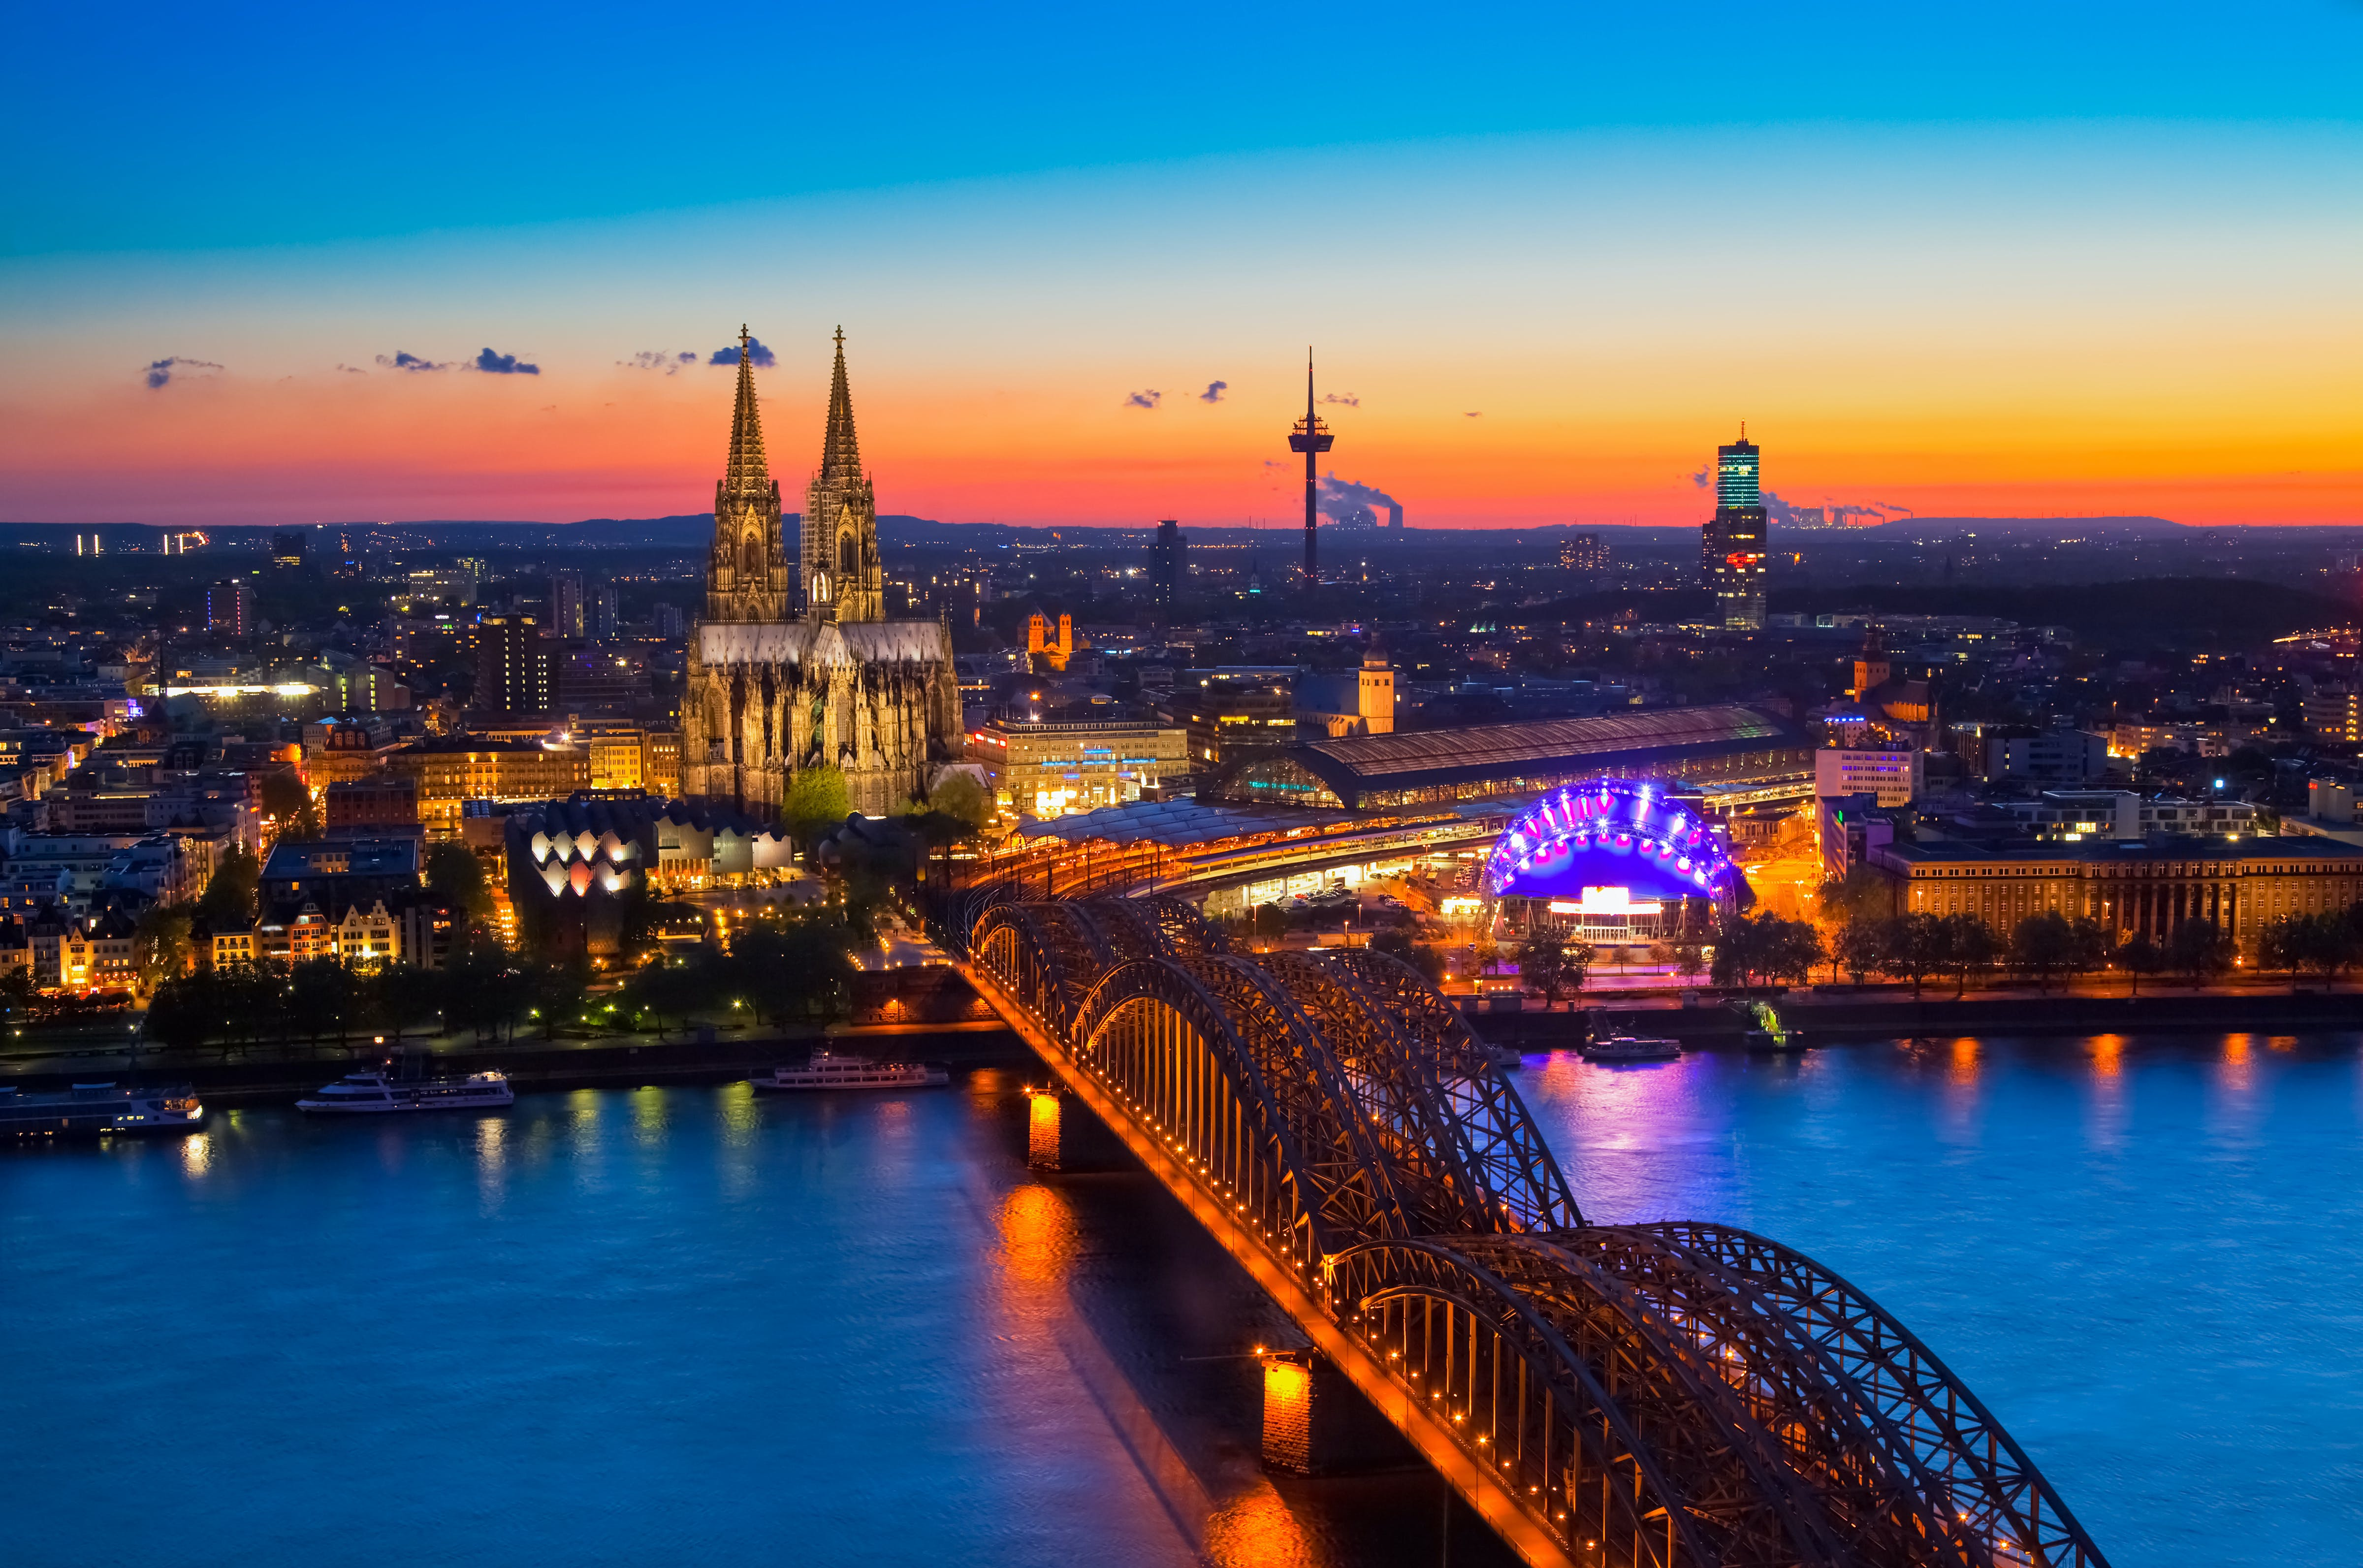 Rhine River voyages include overnights in some of Europe's most beautiful cities and magically quaint villages.